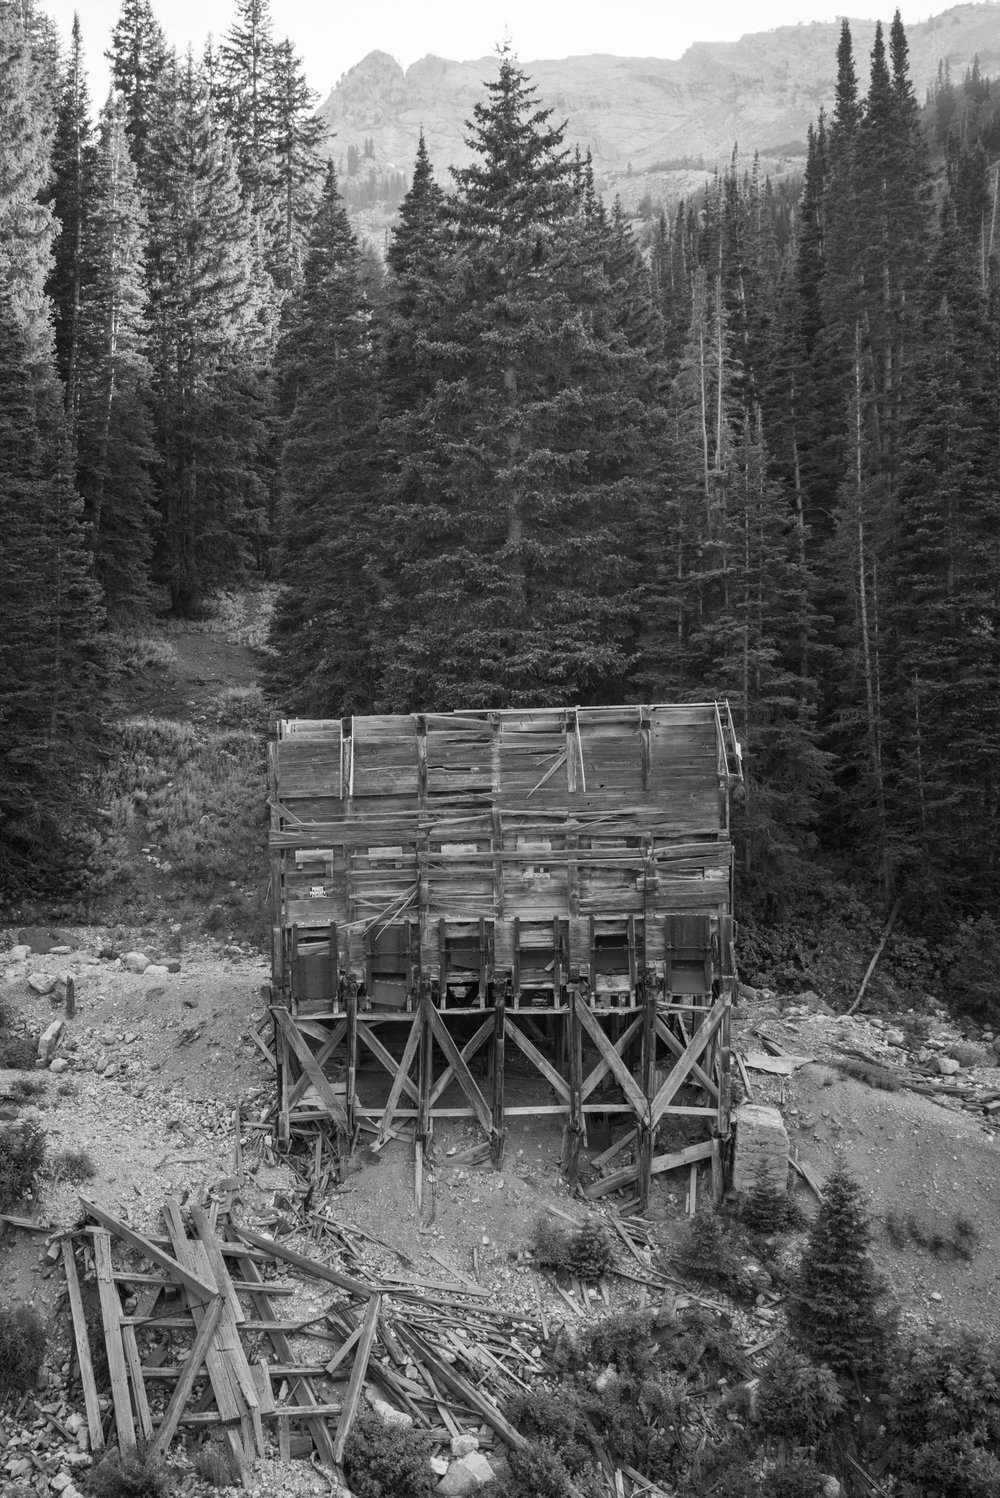 Cardiff Fork silver mine rock sorter sits above a dry creek bed. Mill D, Big Cottonwood Canyon mining district, Utah.